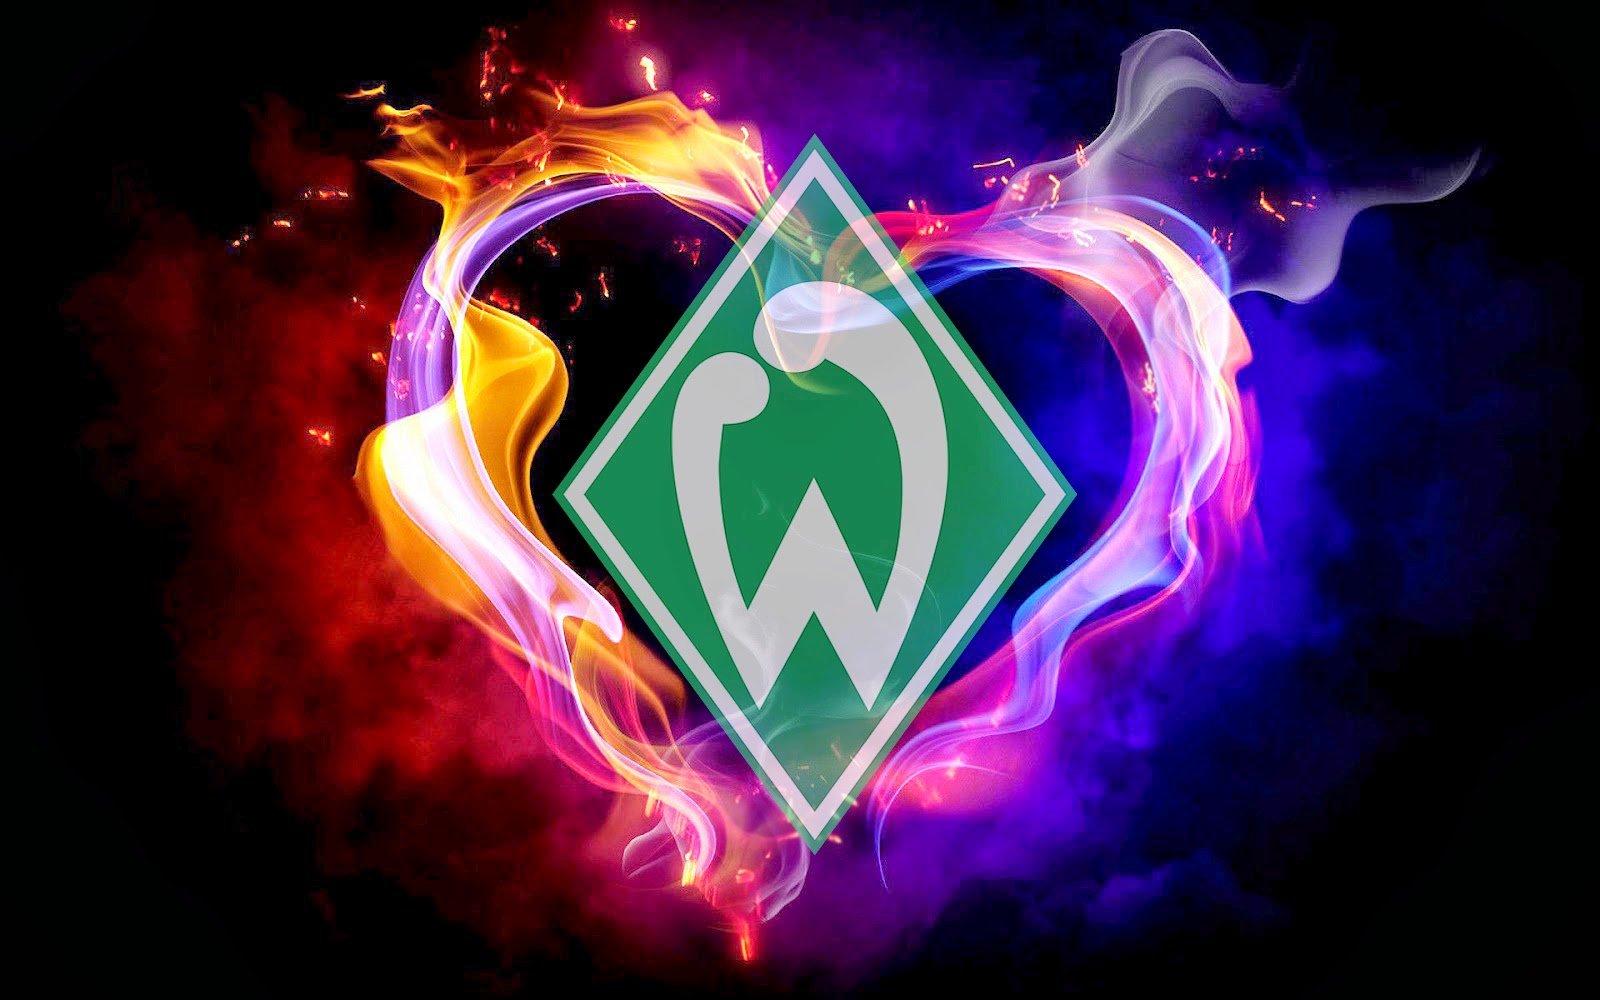 logo werder bremen hintergrund hd hintergrundbilder. Black Bedroom Furniture Sets. Home Design Ideas